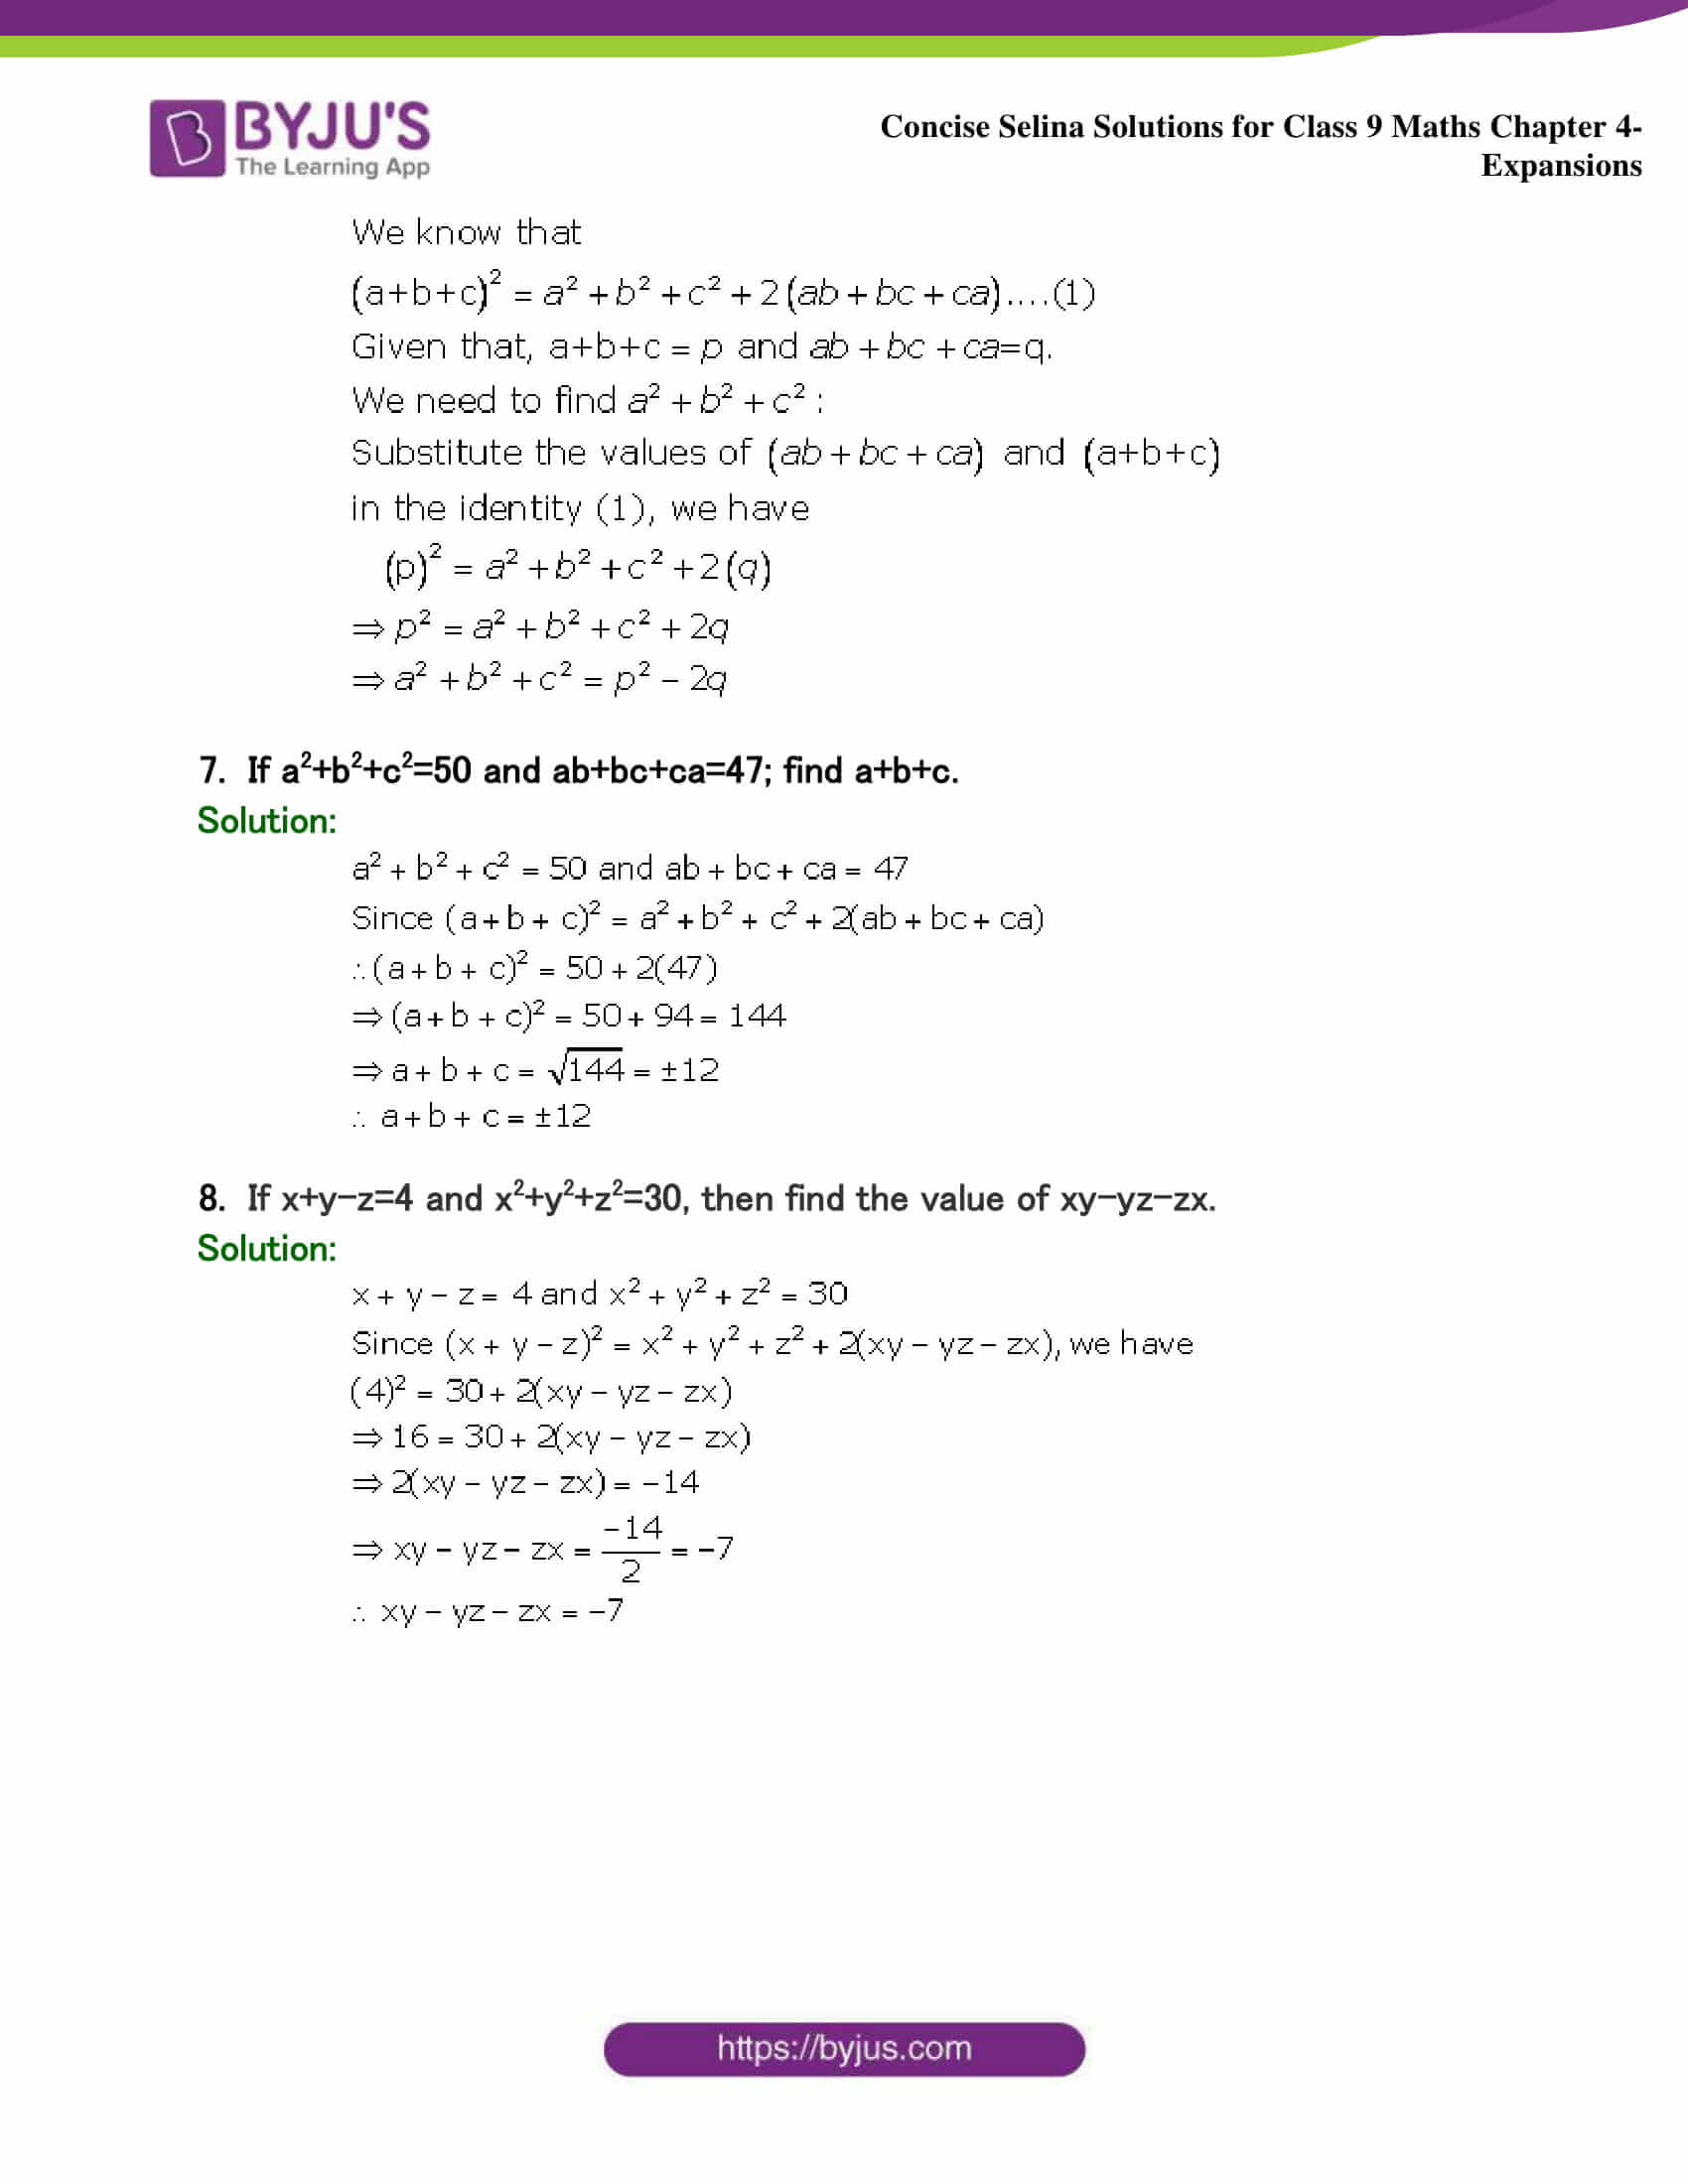 Selina Solutions Class 9 Maths Chapter 4 Expansions part 29